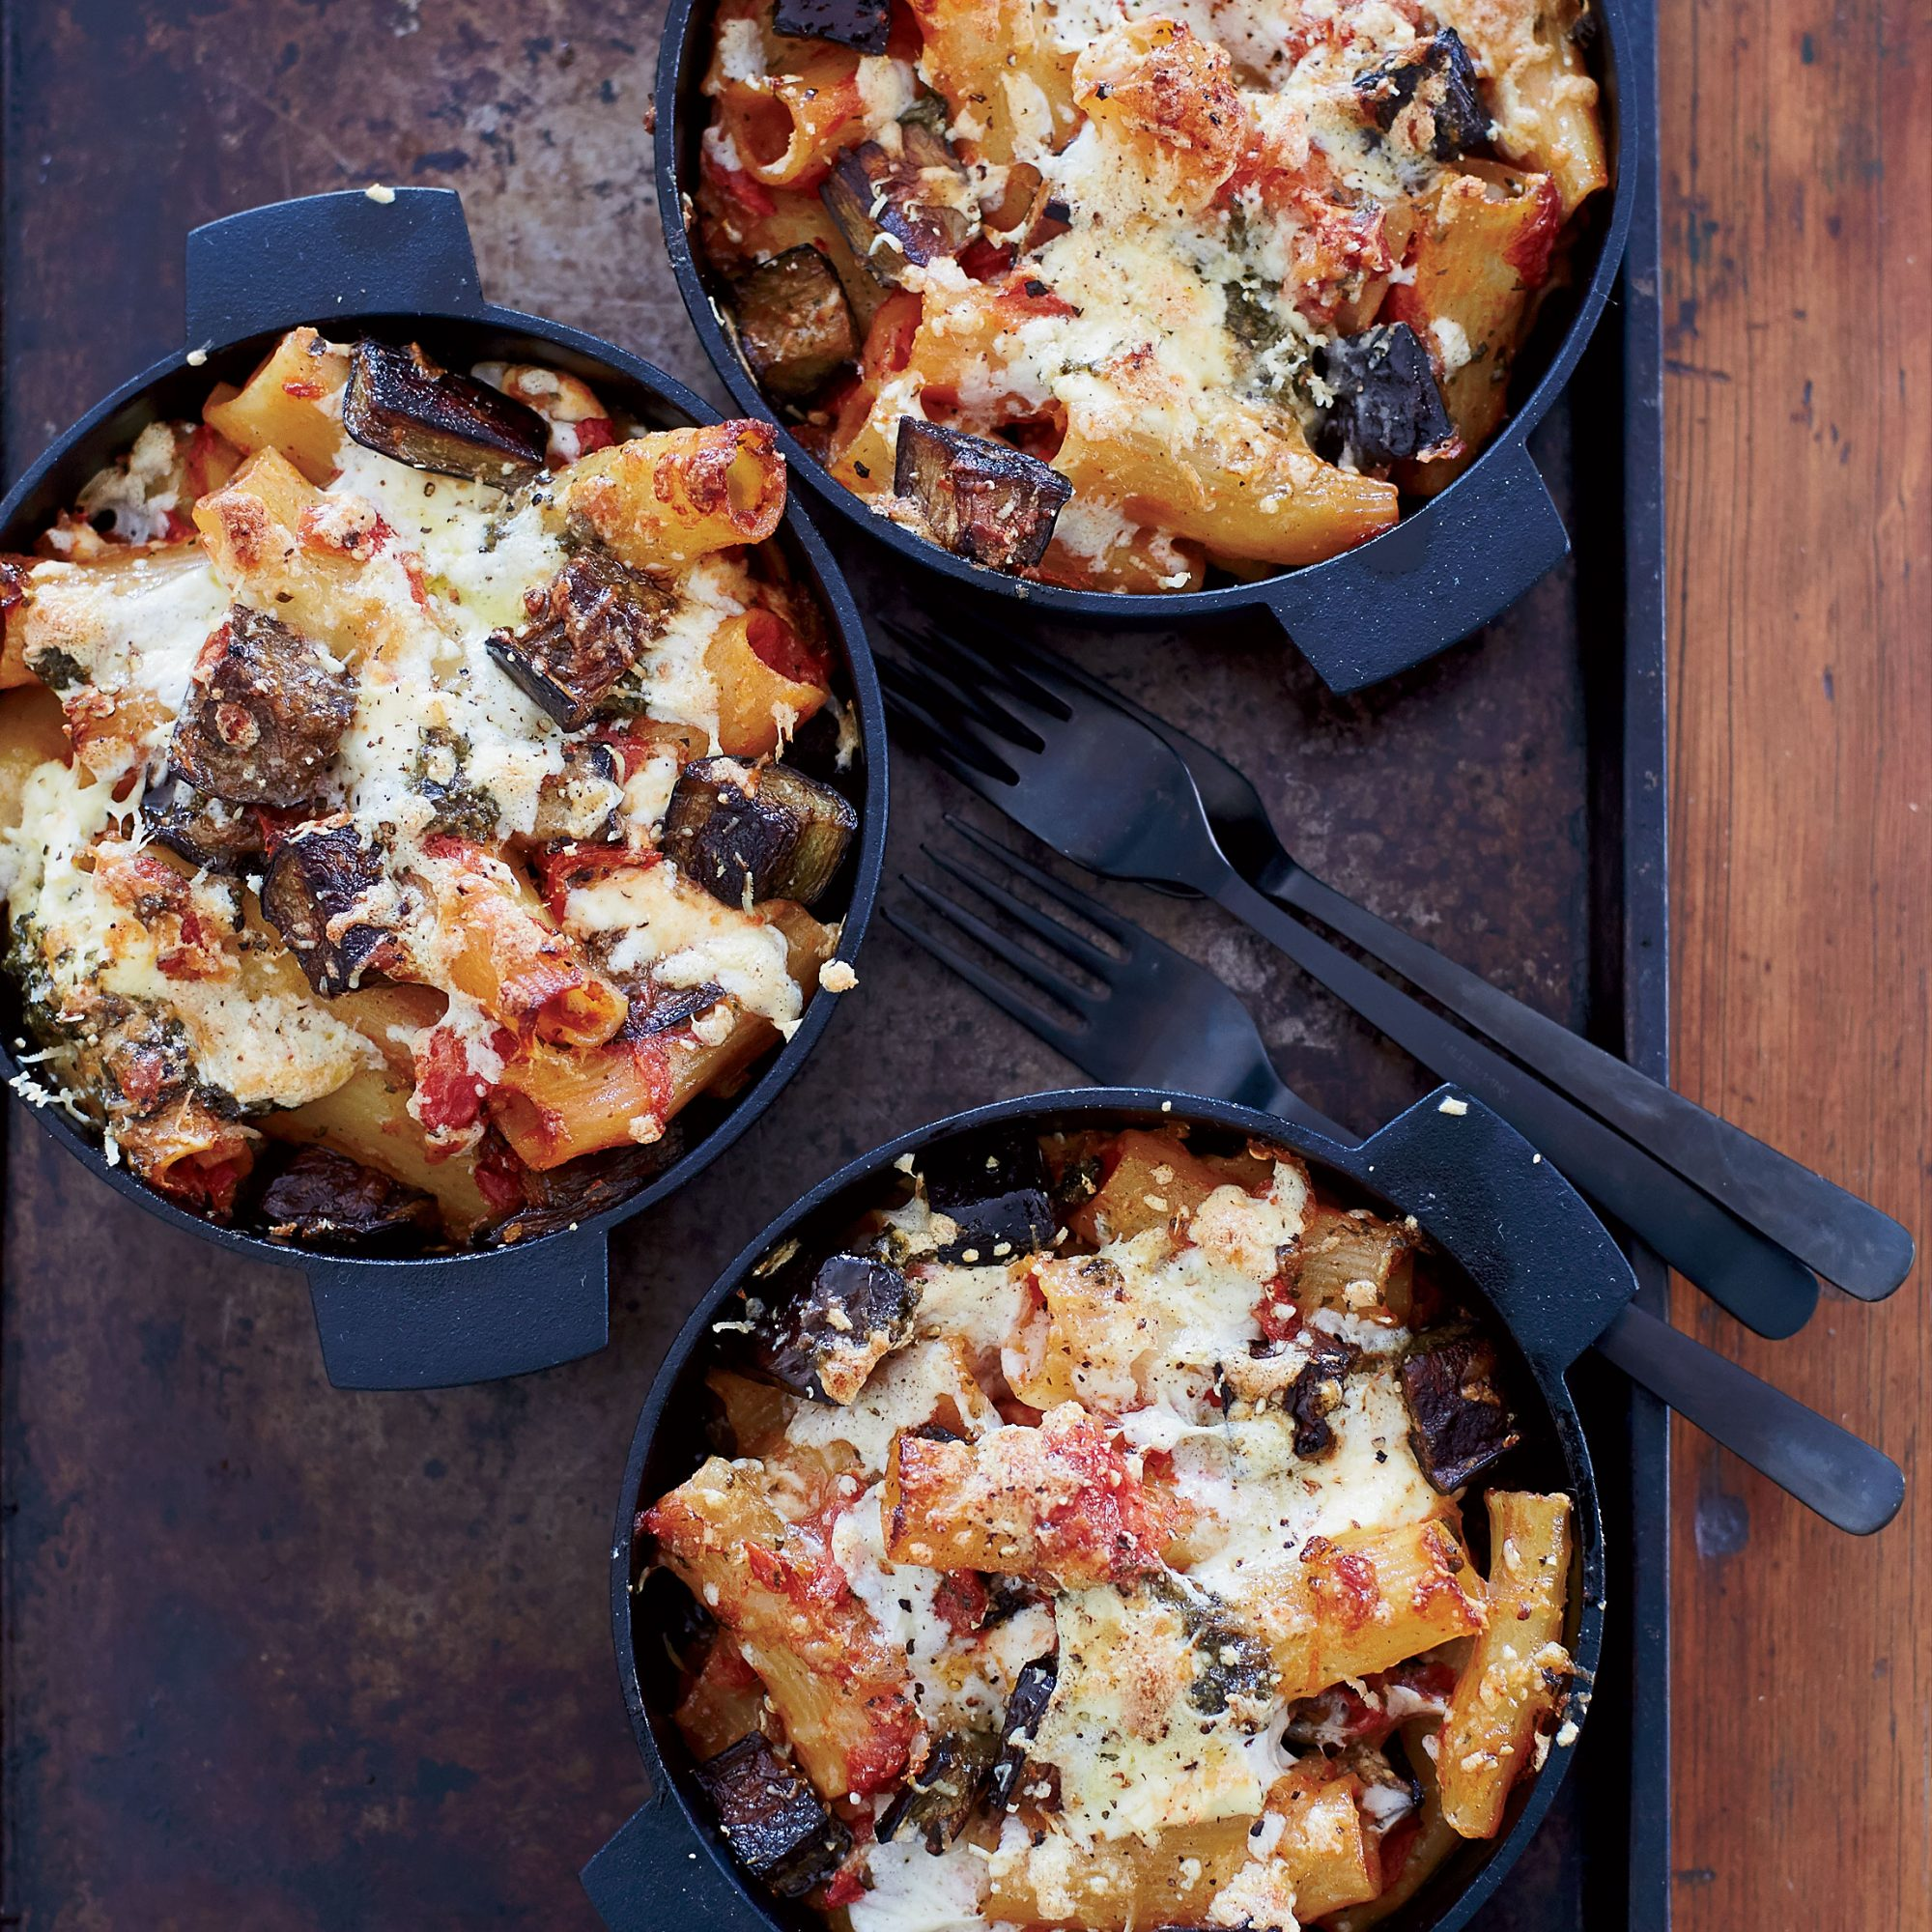 """There is no more comforting food in the world than a bubbly pasta dish straight from the oven,"" says chef Jonathan Waxman. He replaces the béchamel in this traditional baked pasta with lush eggplant. To make the recipe even healthier, he suggests using whole-wheat pasta."